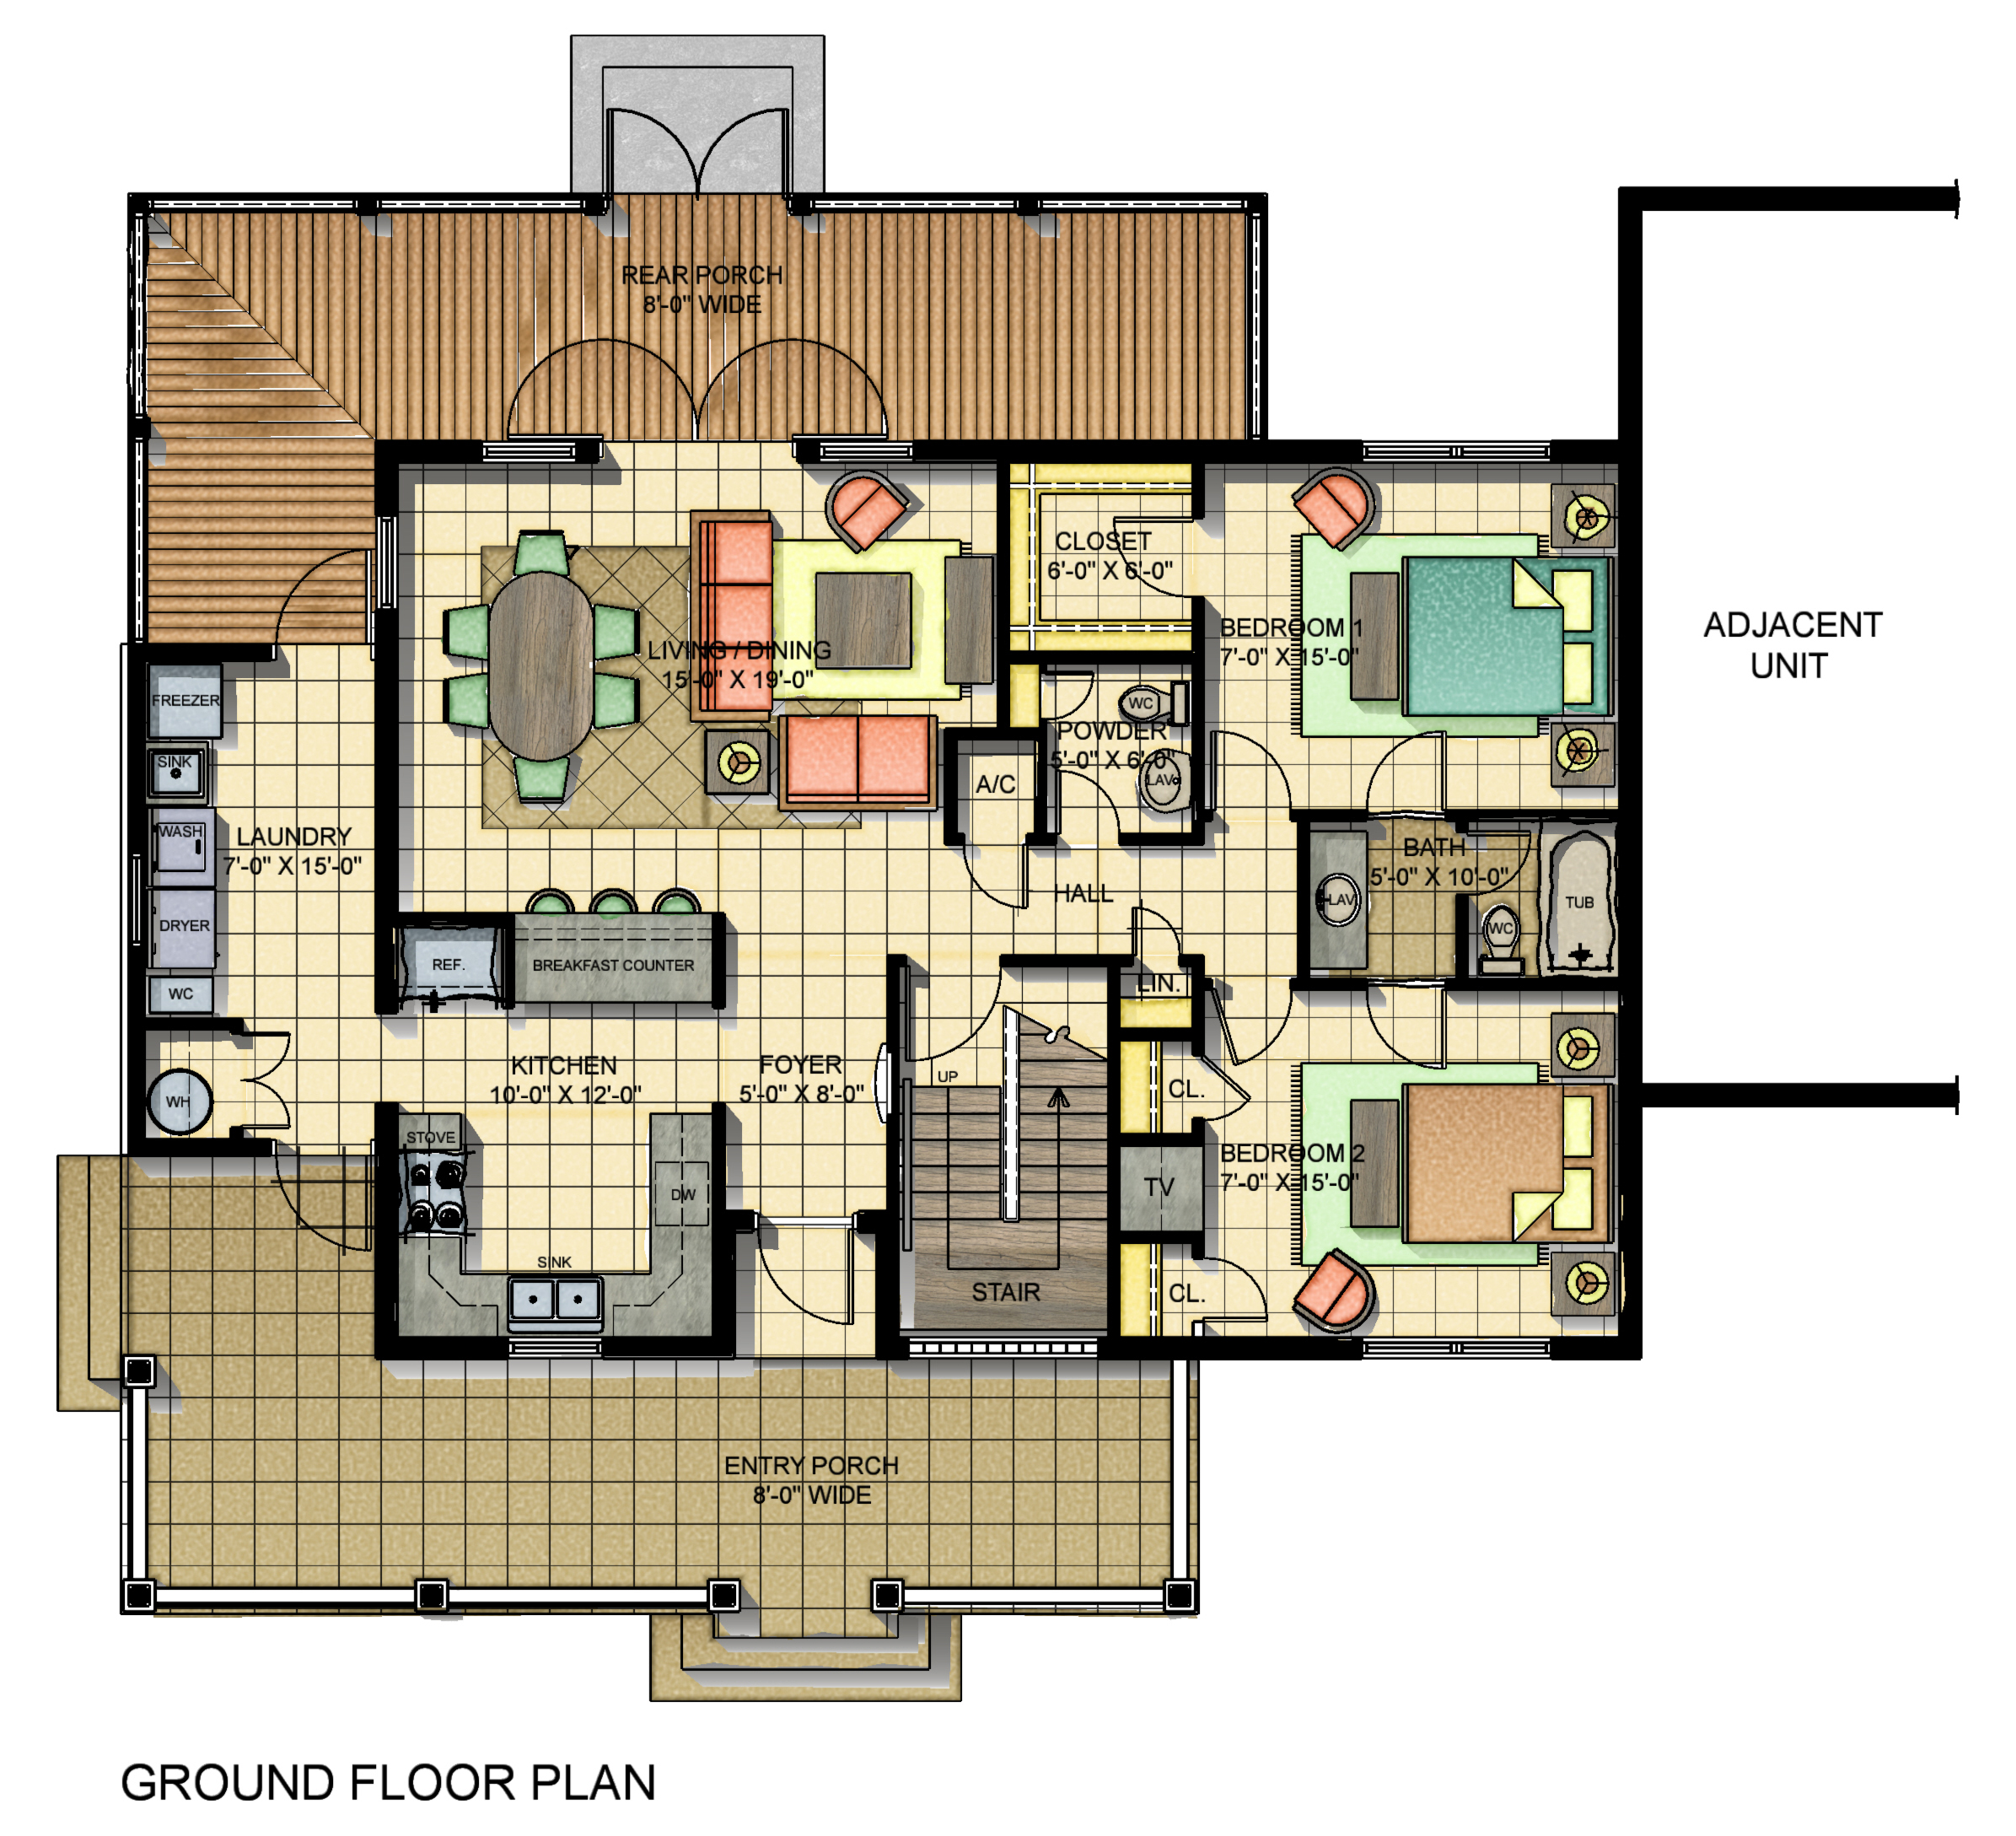 Typical Unit Ground floor plan